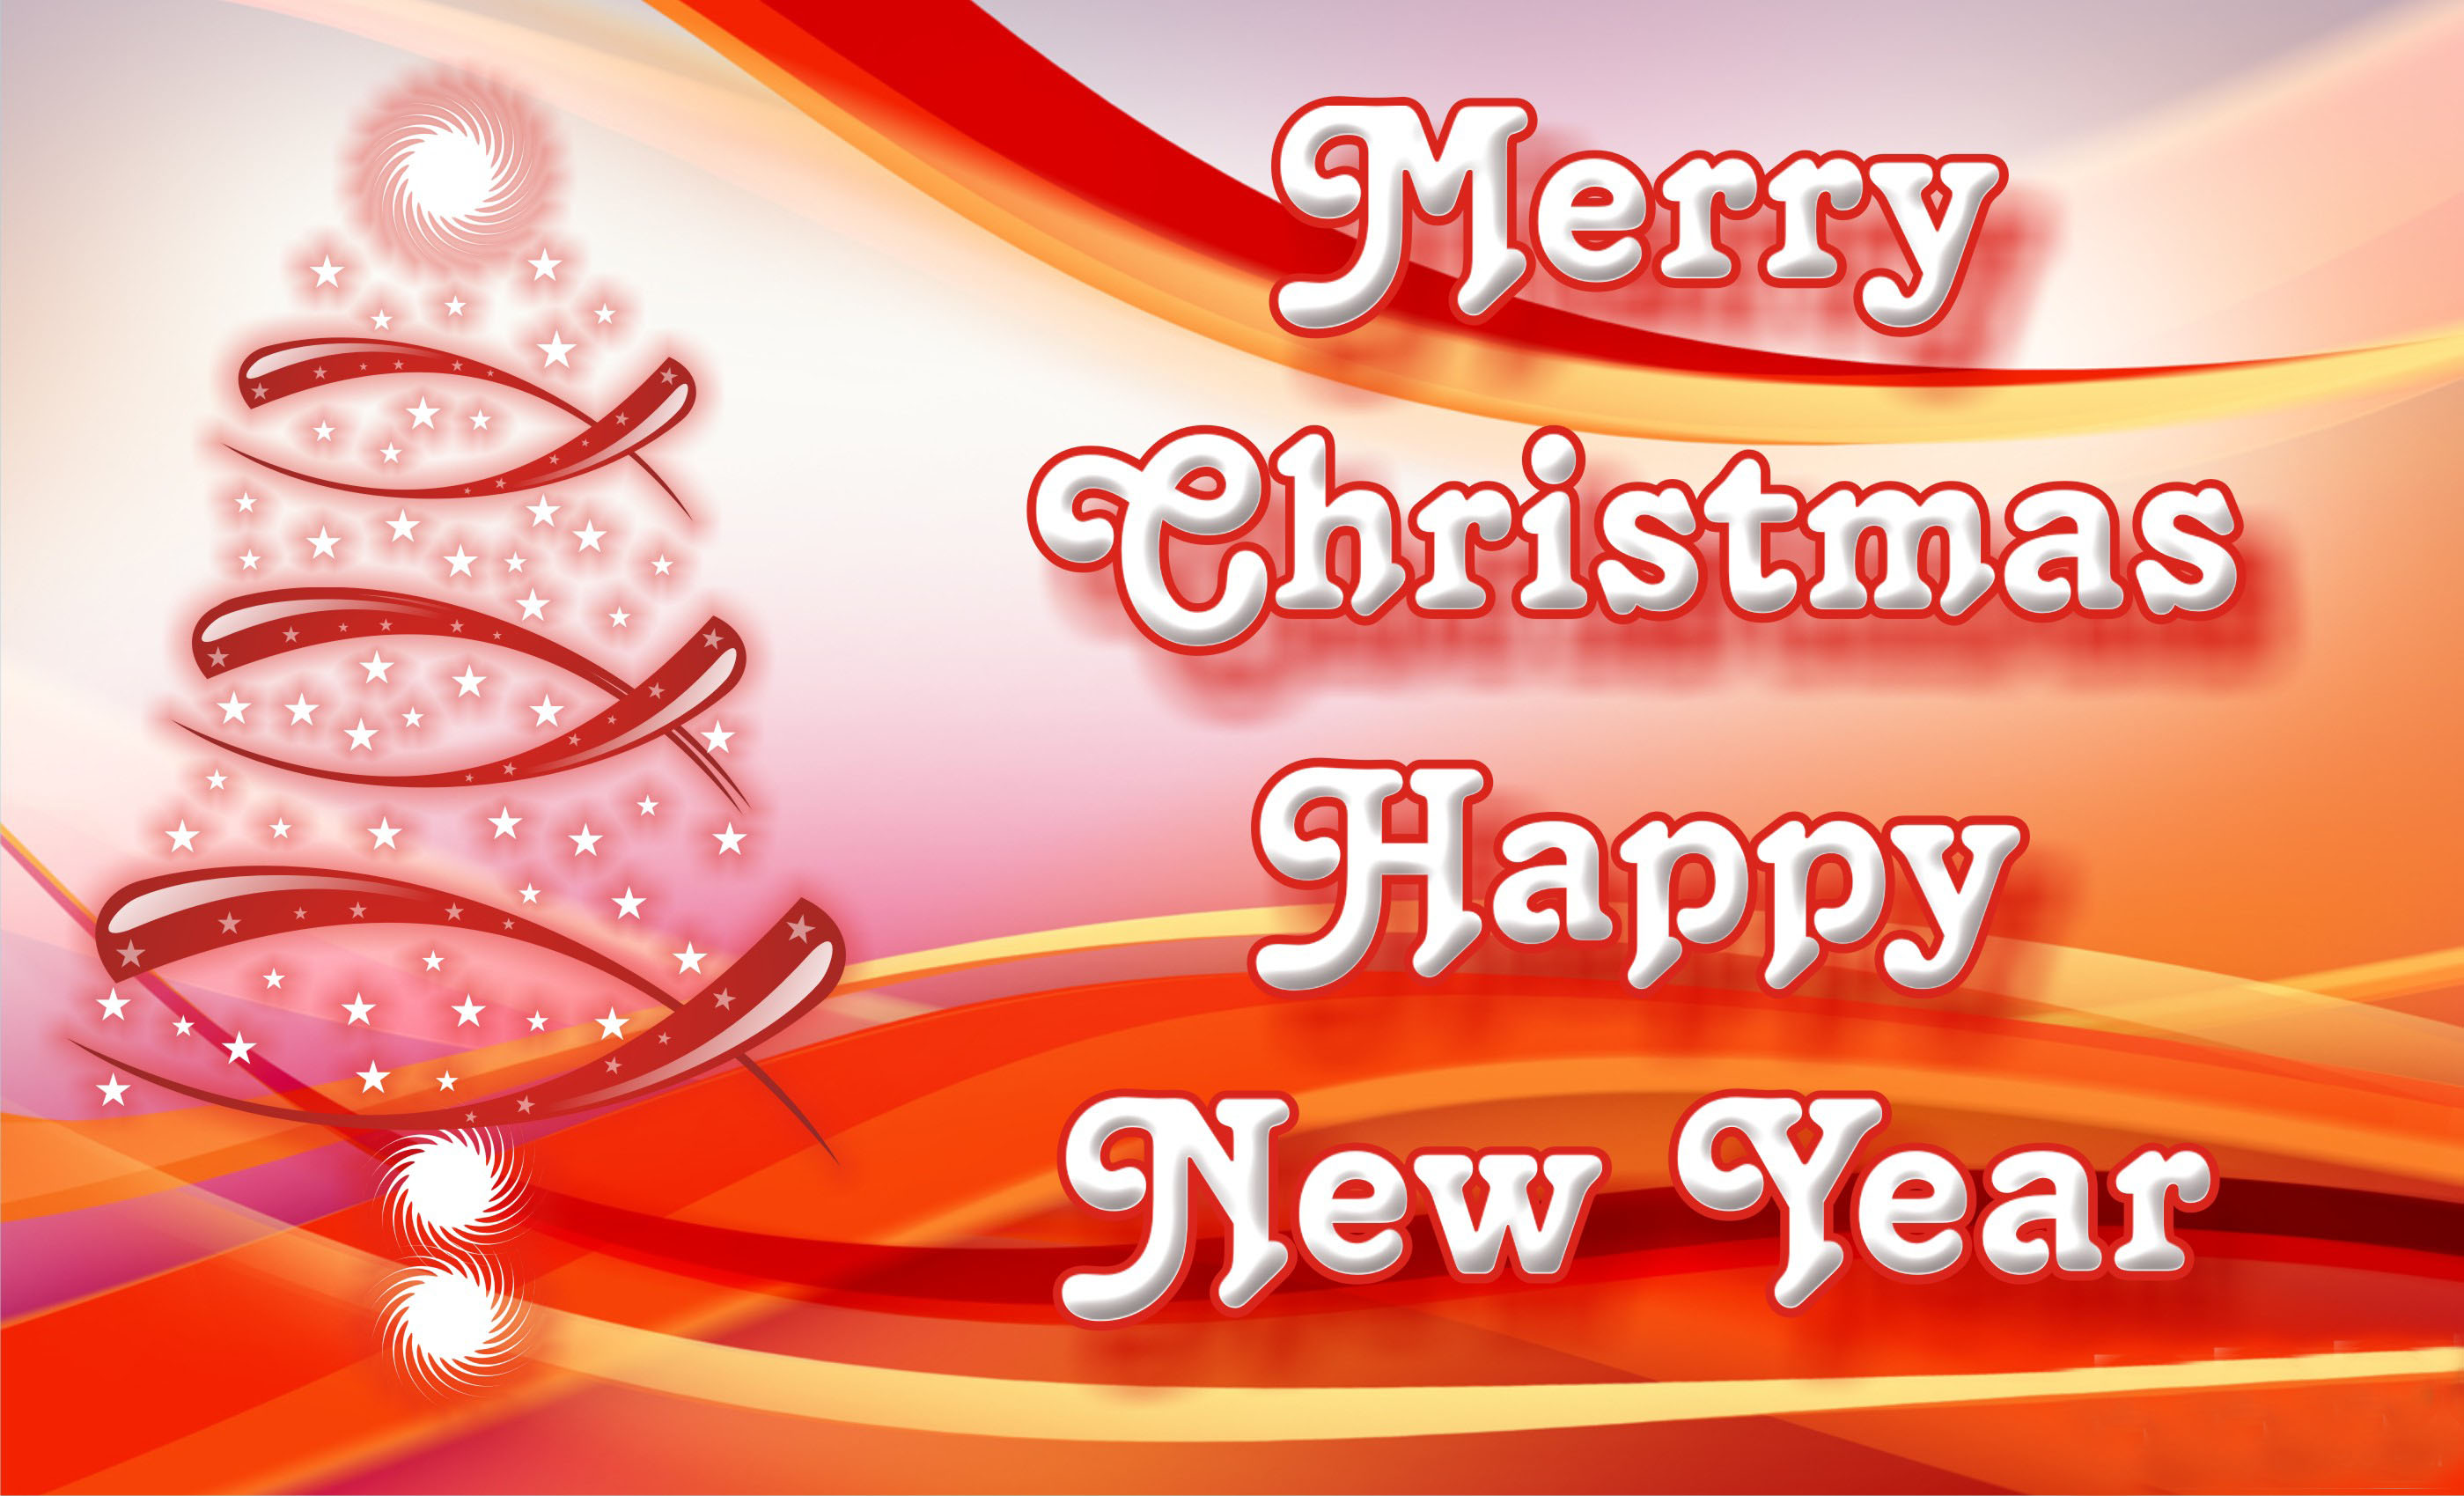 Merry Christmas And Happy New Year HD Images